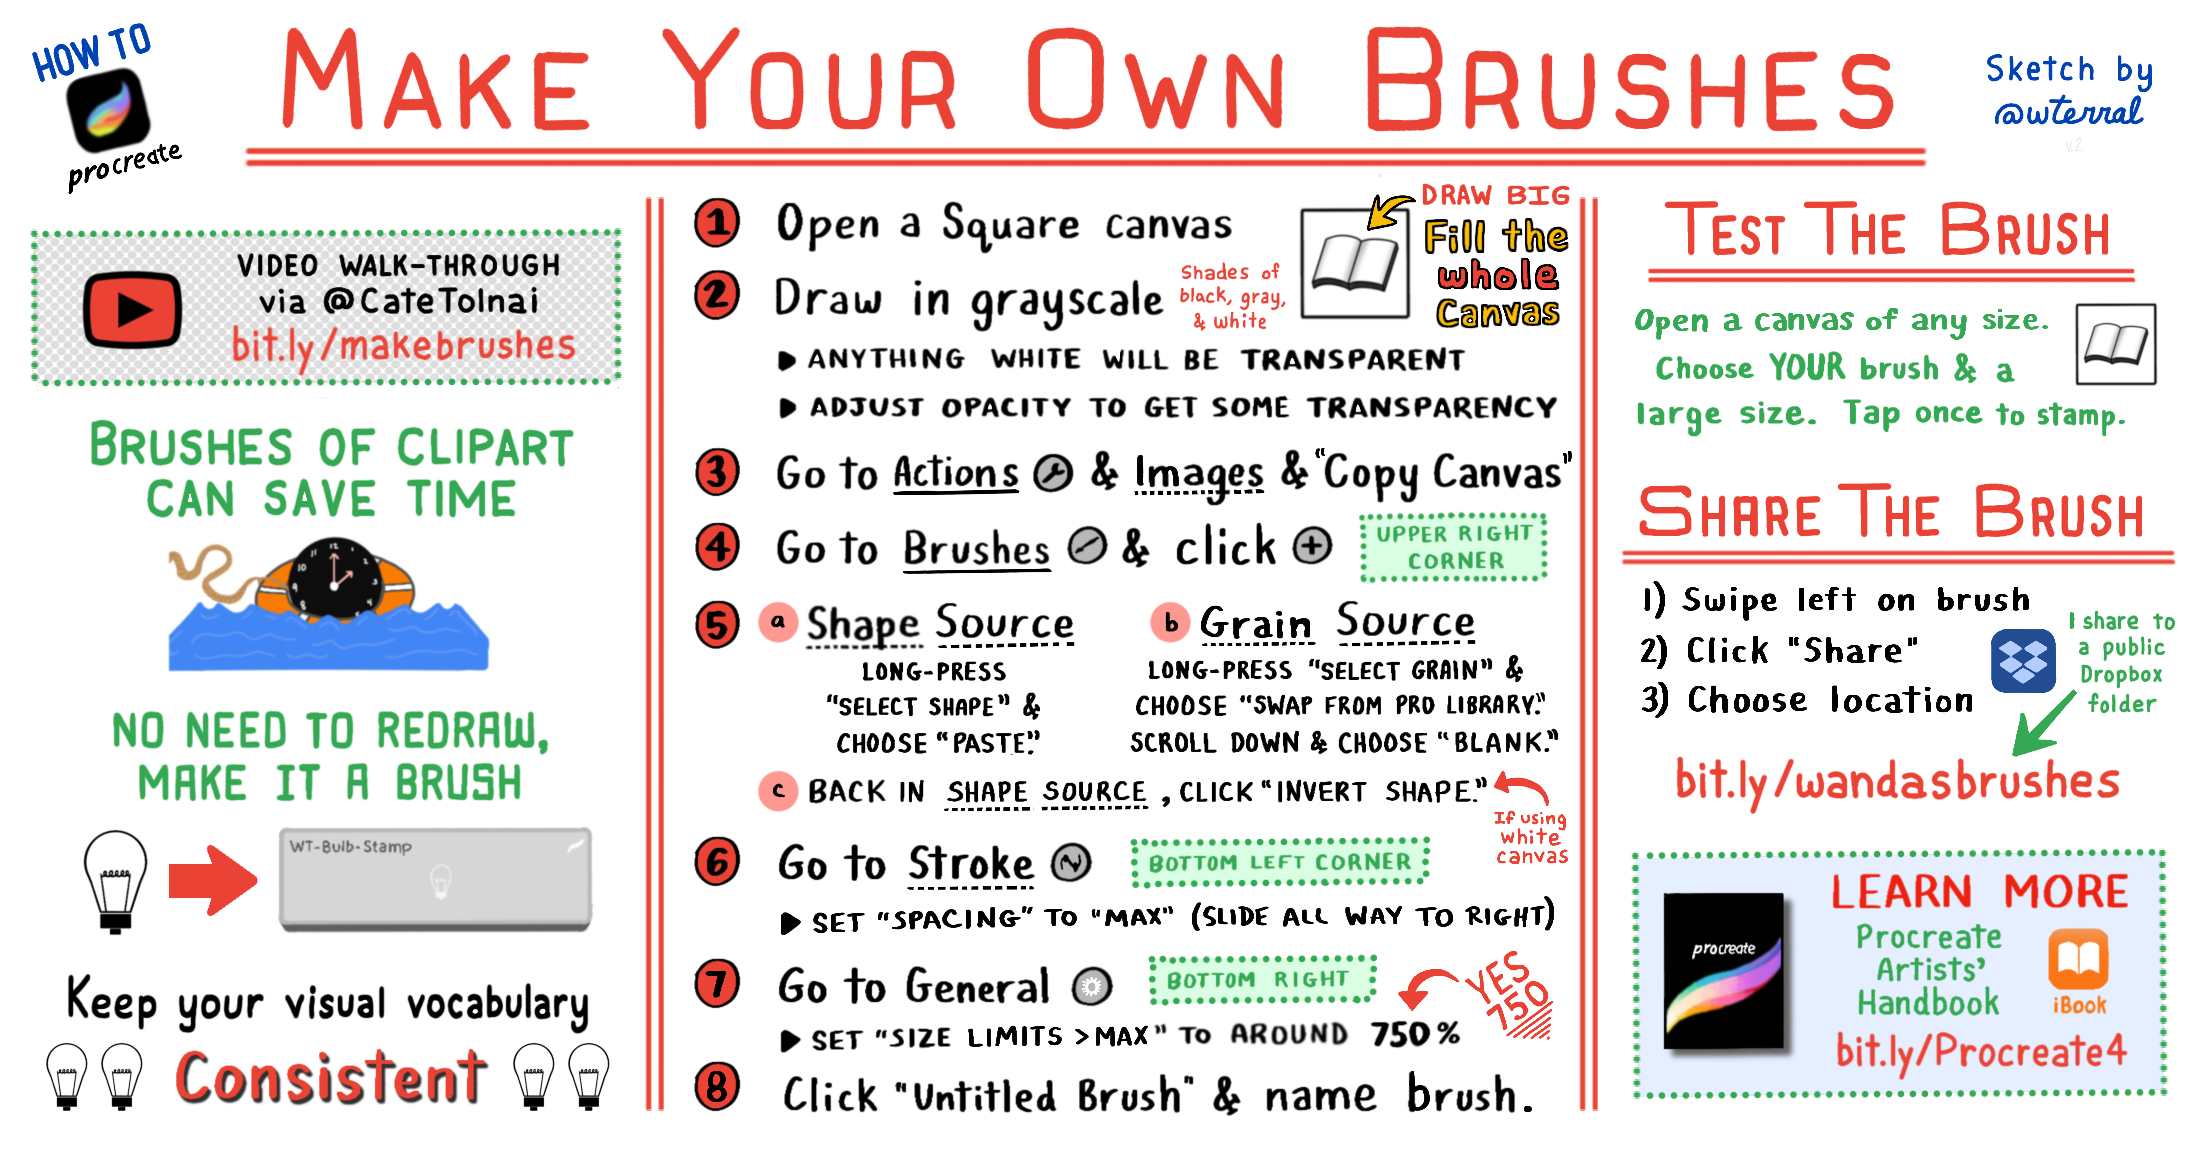 Sketchnote showing how to make Procreate brushes